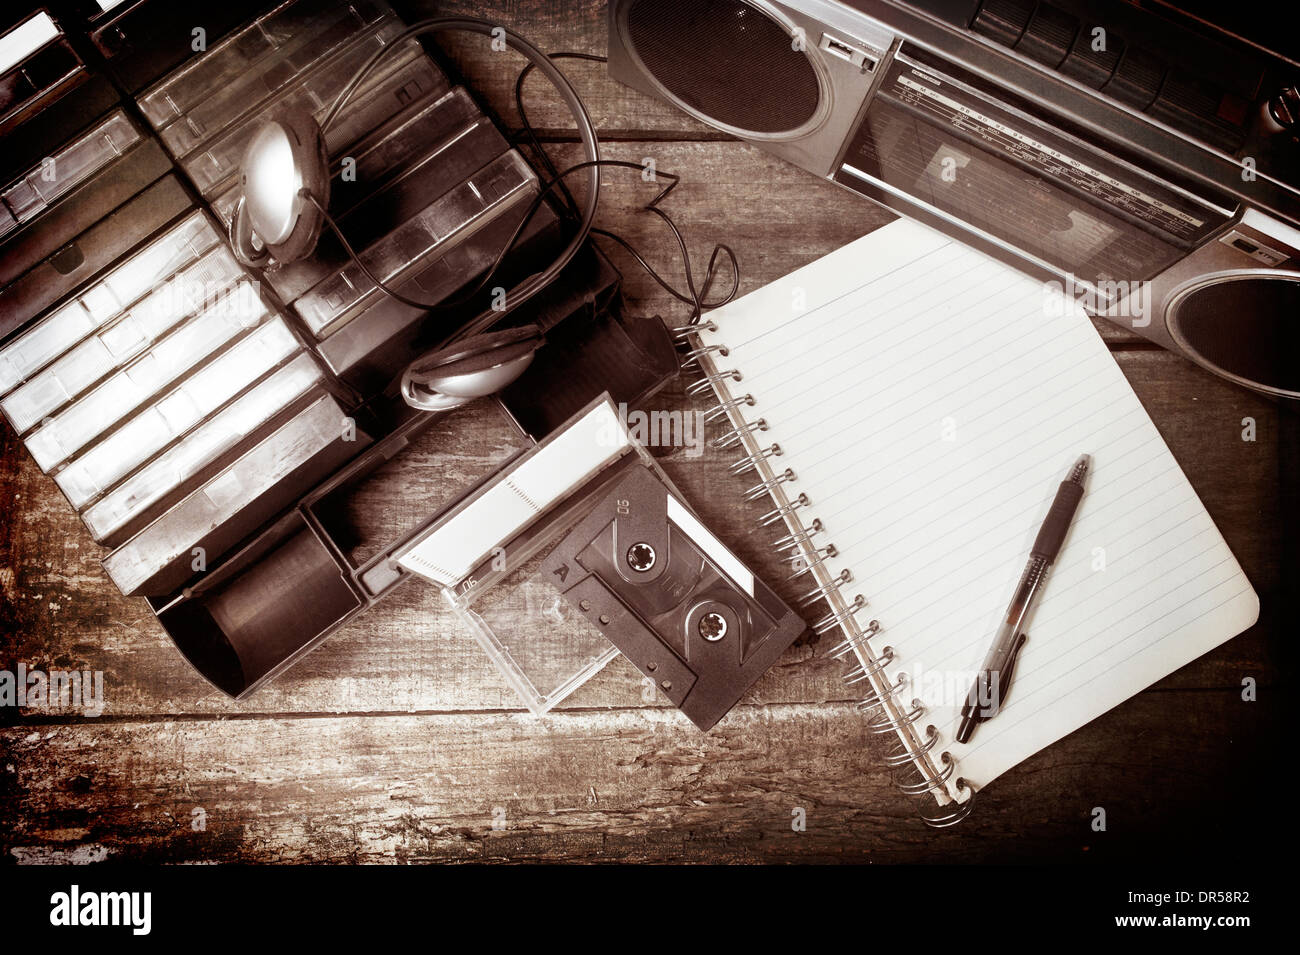 Old cassette tapes, cassette player and blank notebook on wooden surface Stock Photo